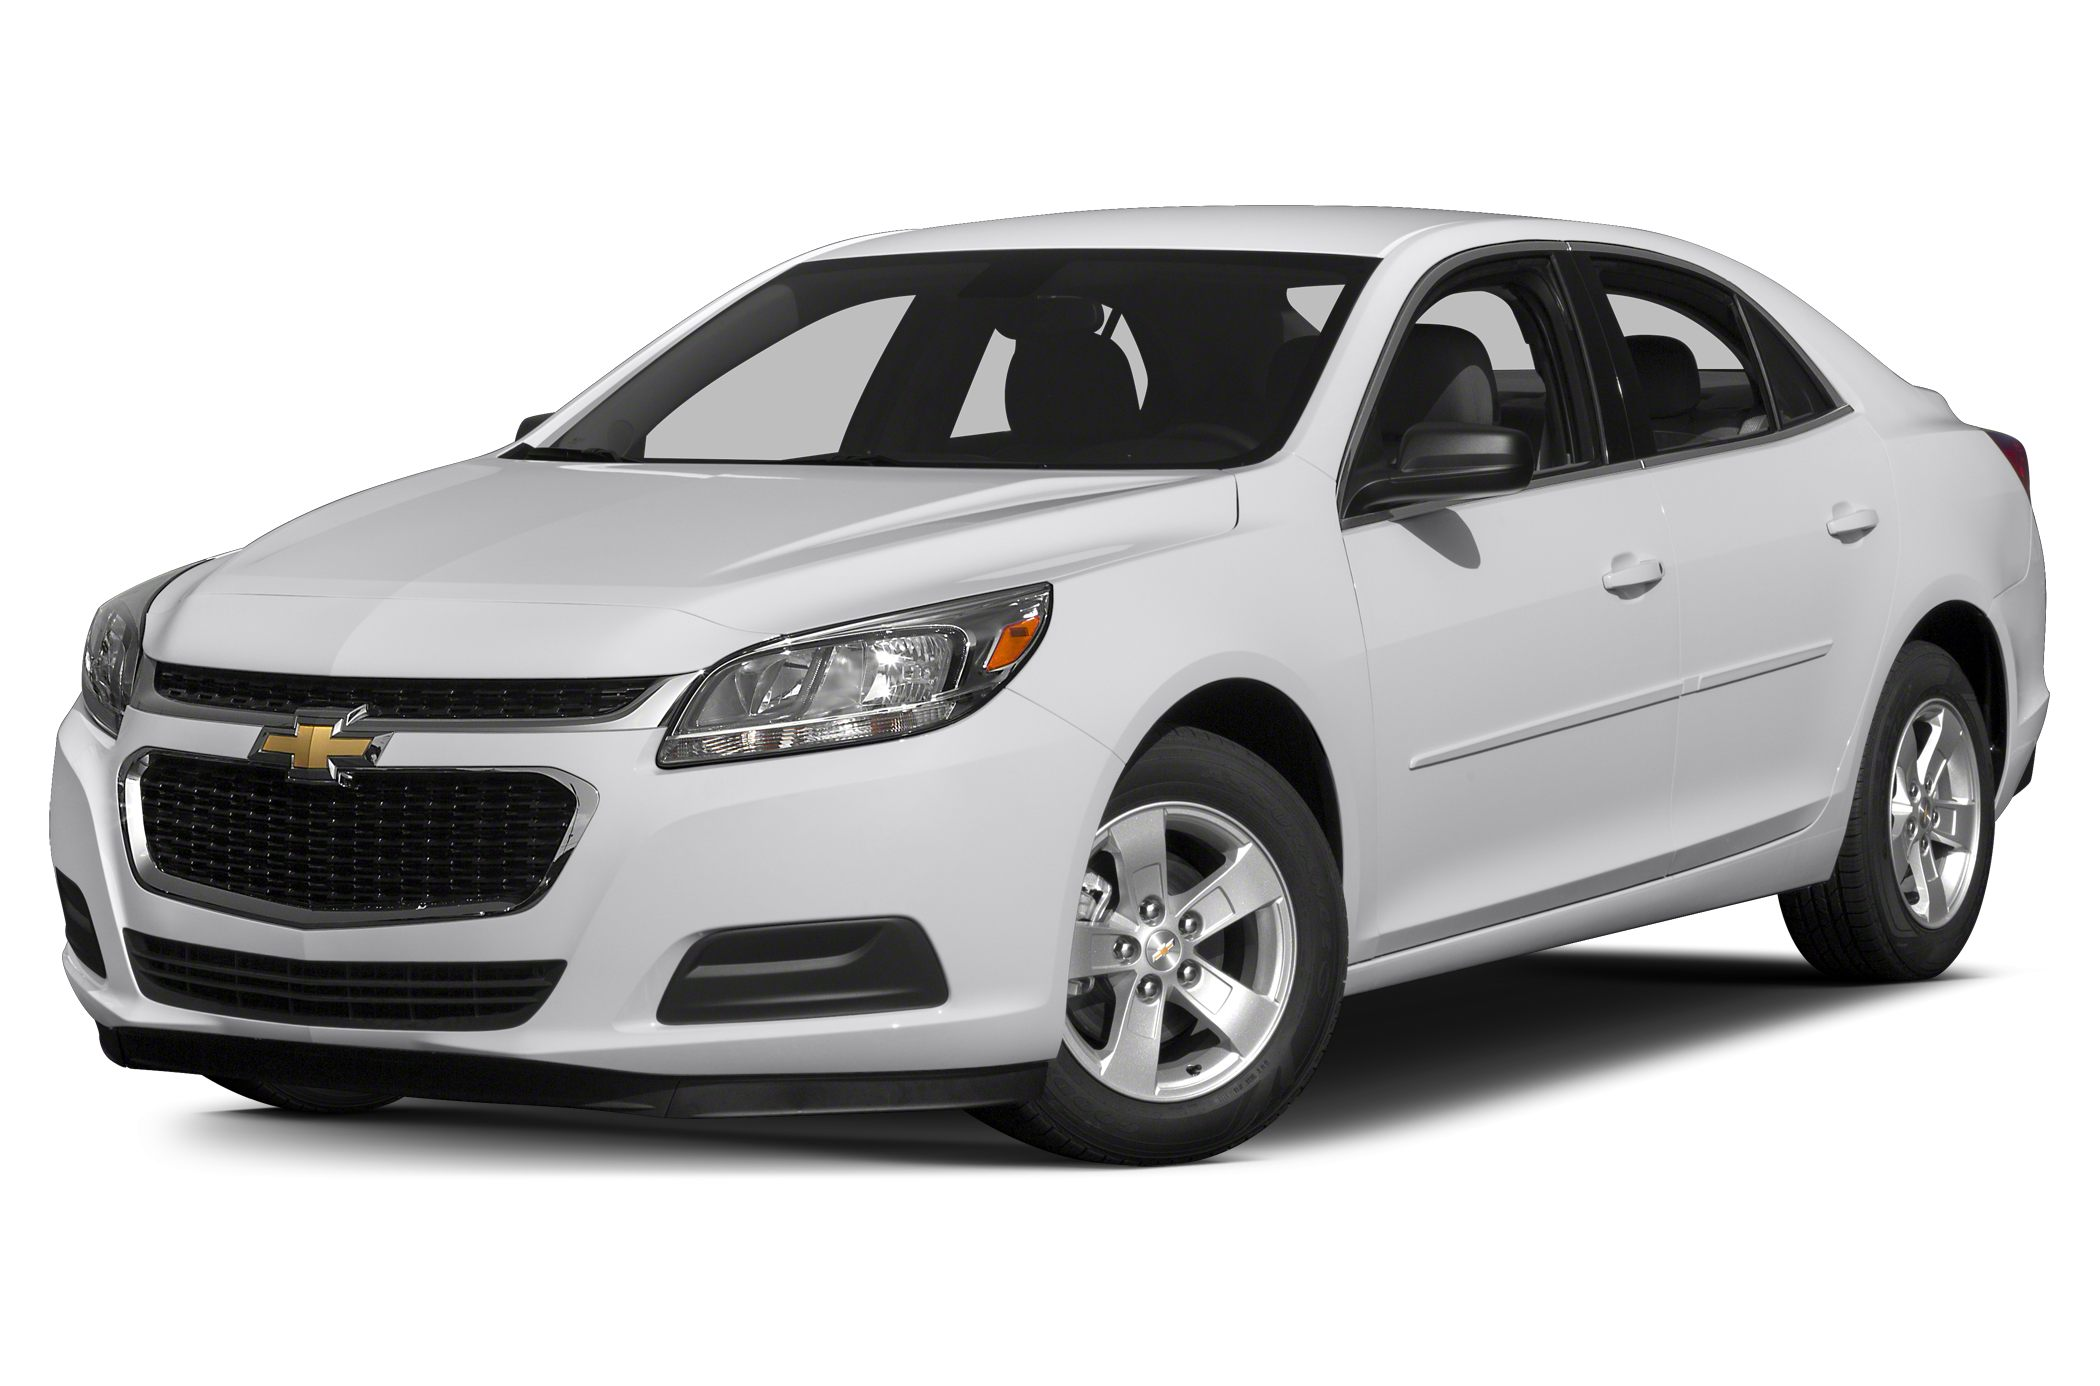 2015 Chevrolet Malibu 1LT Sedan for sale in Westfield for $25,985 with 0 miles